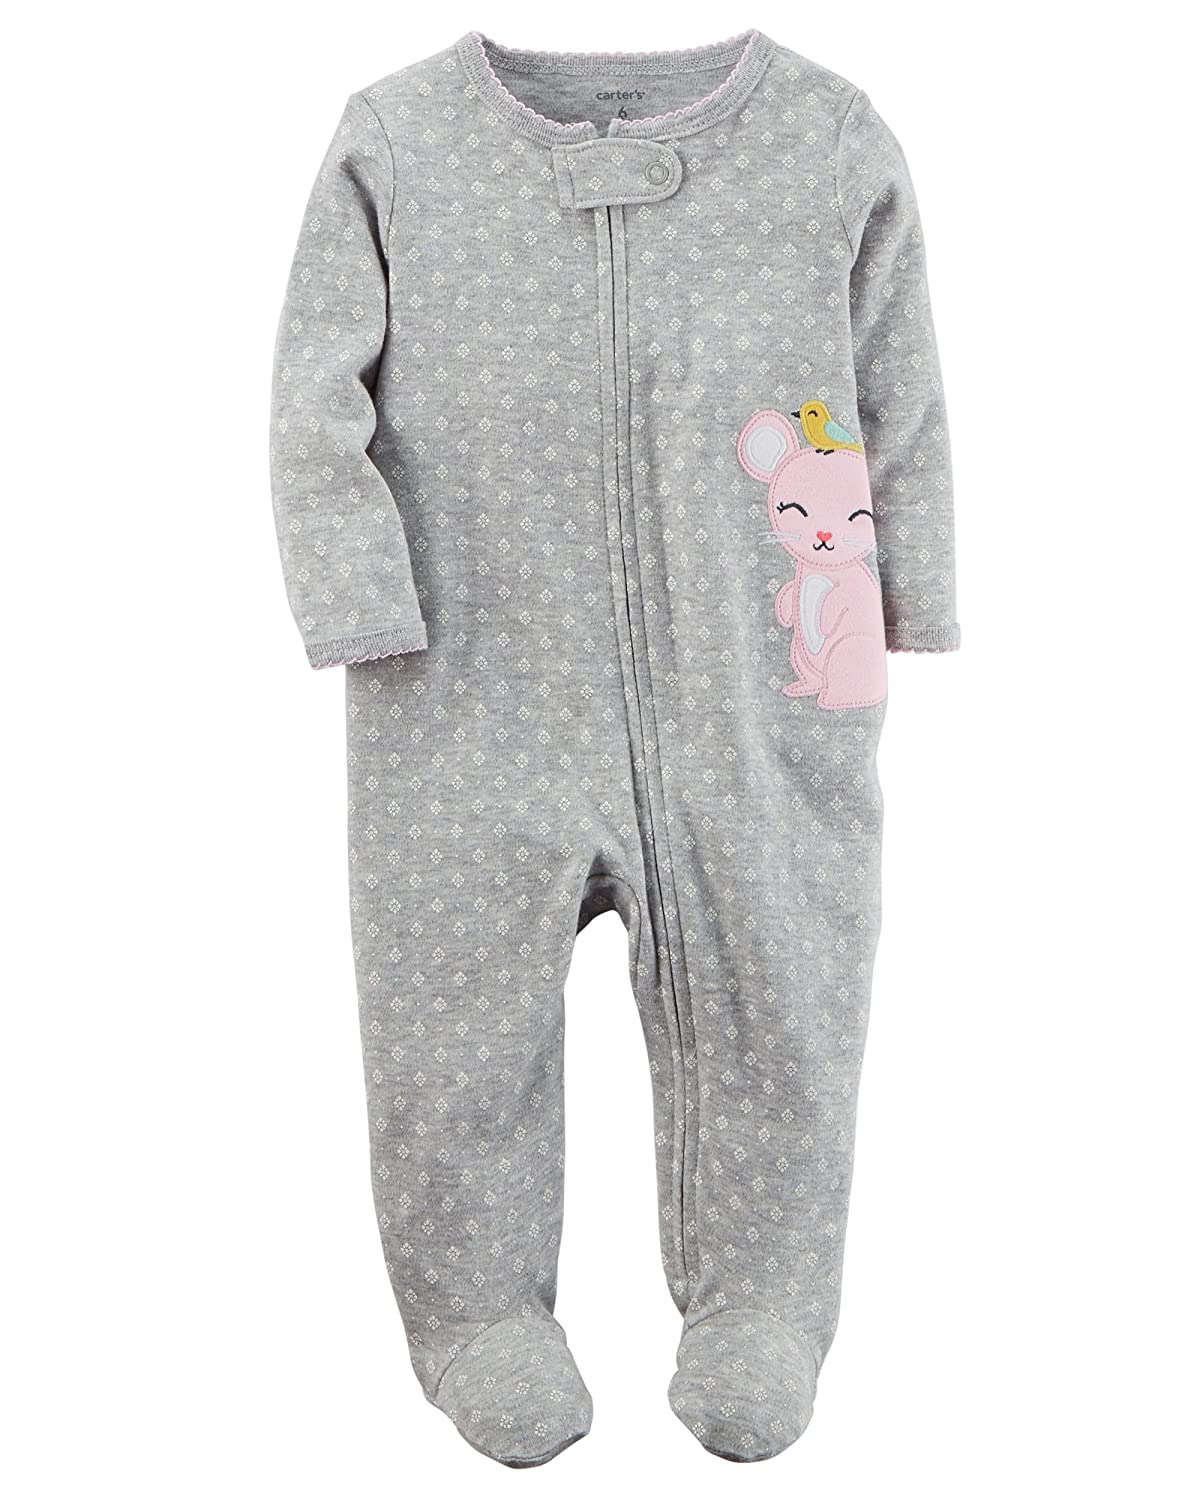 f0c6ee953a William Carter s Company Carter s Set of 2 Baby Girls Cotton Footed Zip-up  Sleeper Sleep and Play Pajamas (3 Months